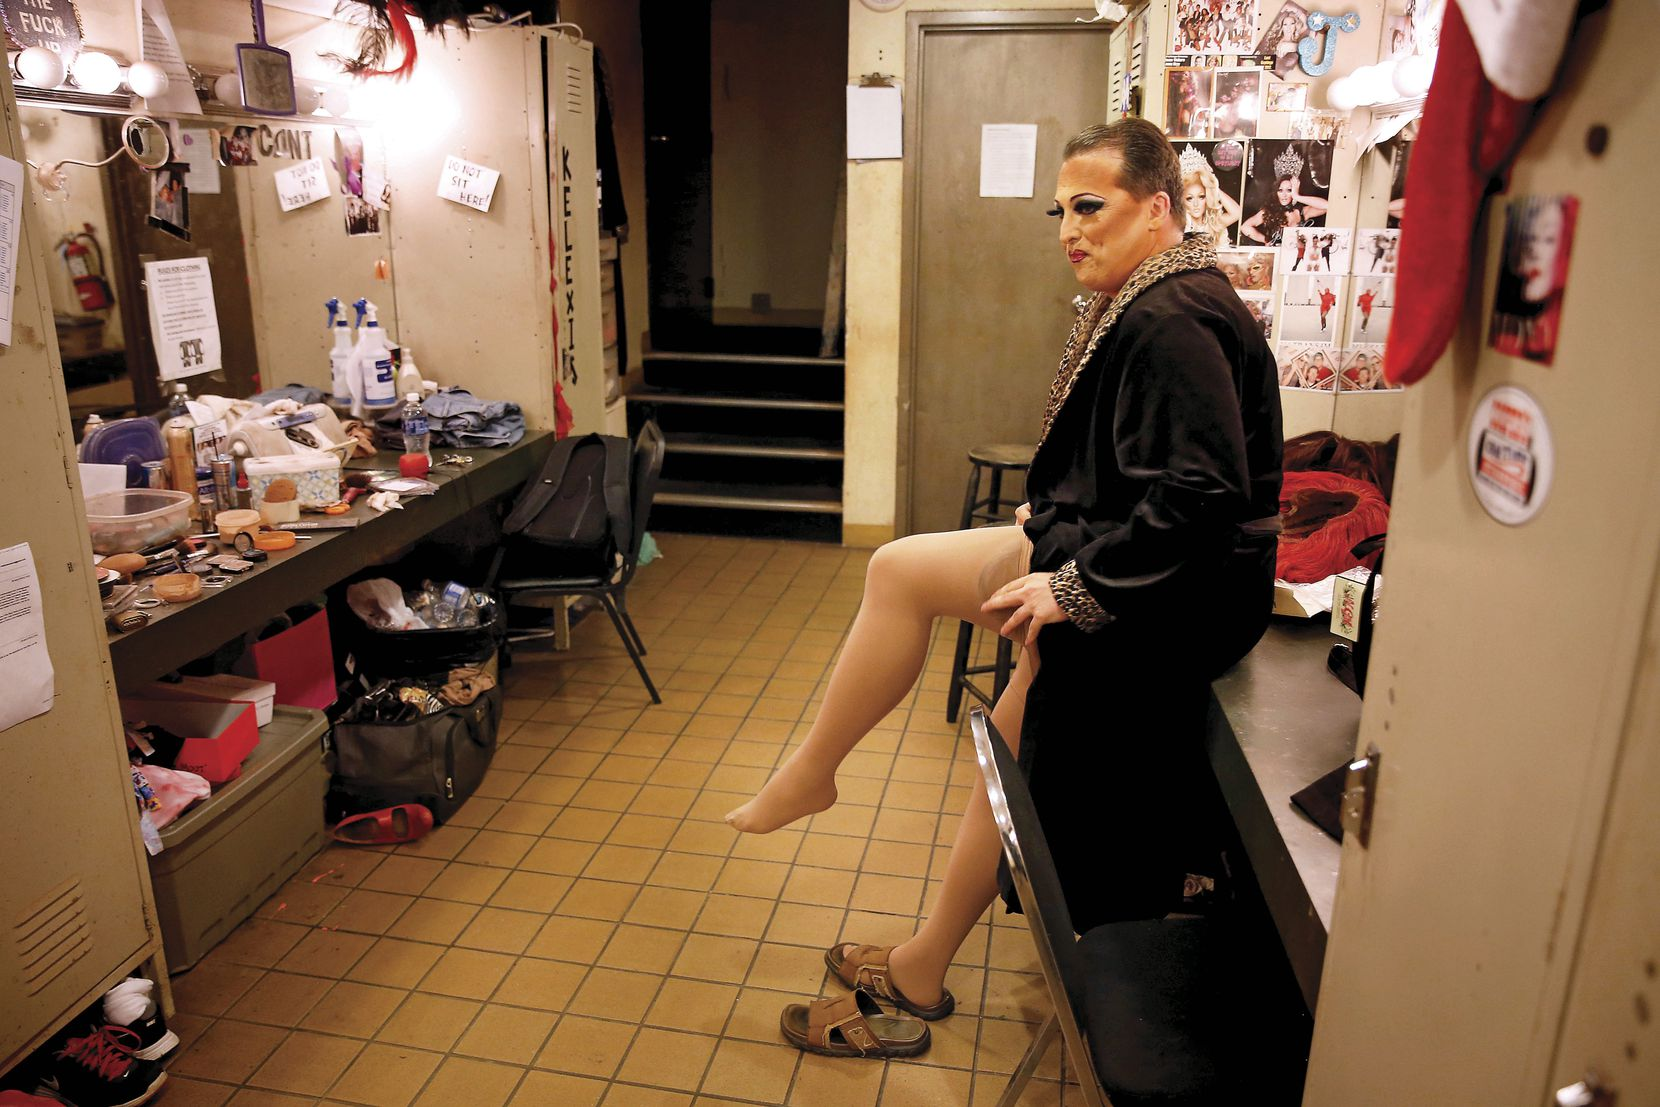 """James Love put on his pantyhose before performing as """"Cassie Nova""""€ at Sue Ellen's in Dallas on June 14, two days after the slaughter of 49 people at a gay nightclub in Orlando. Love said he hoped his performance could promote healing."""